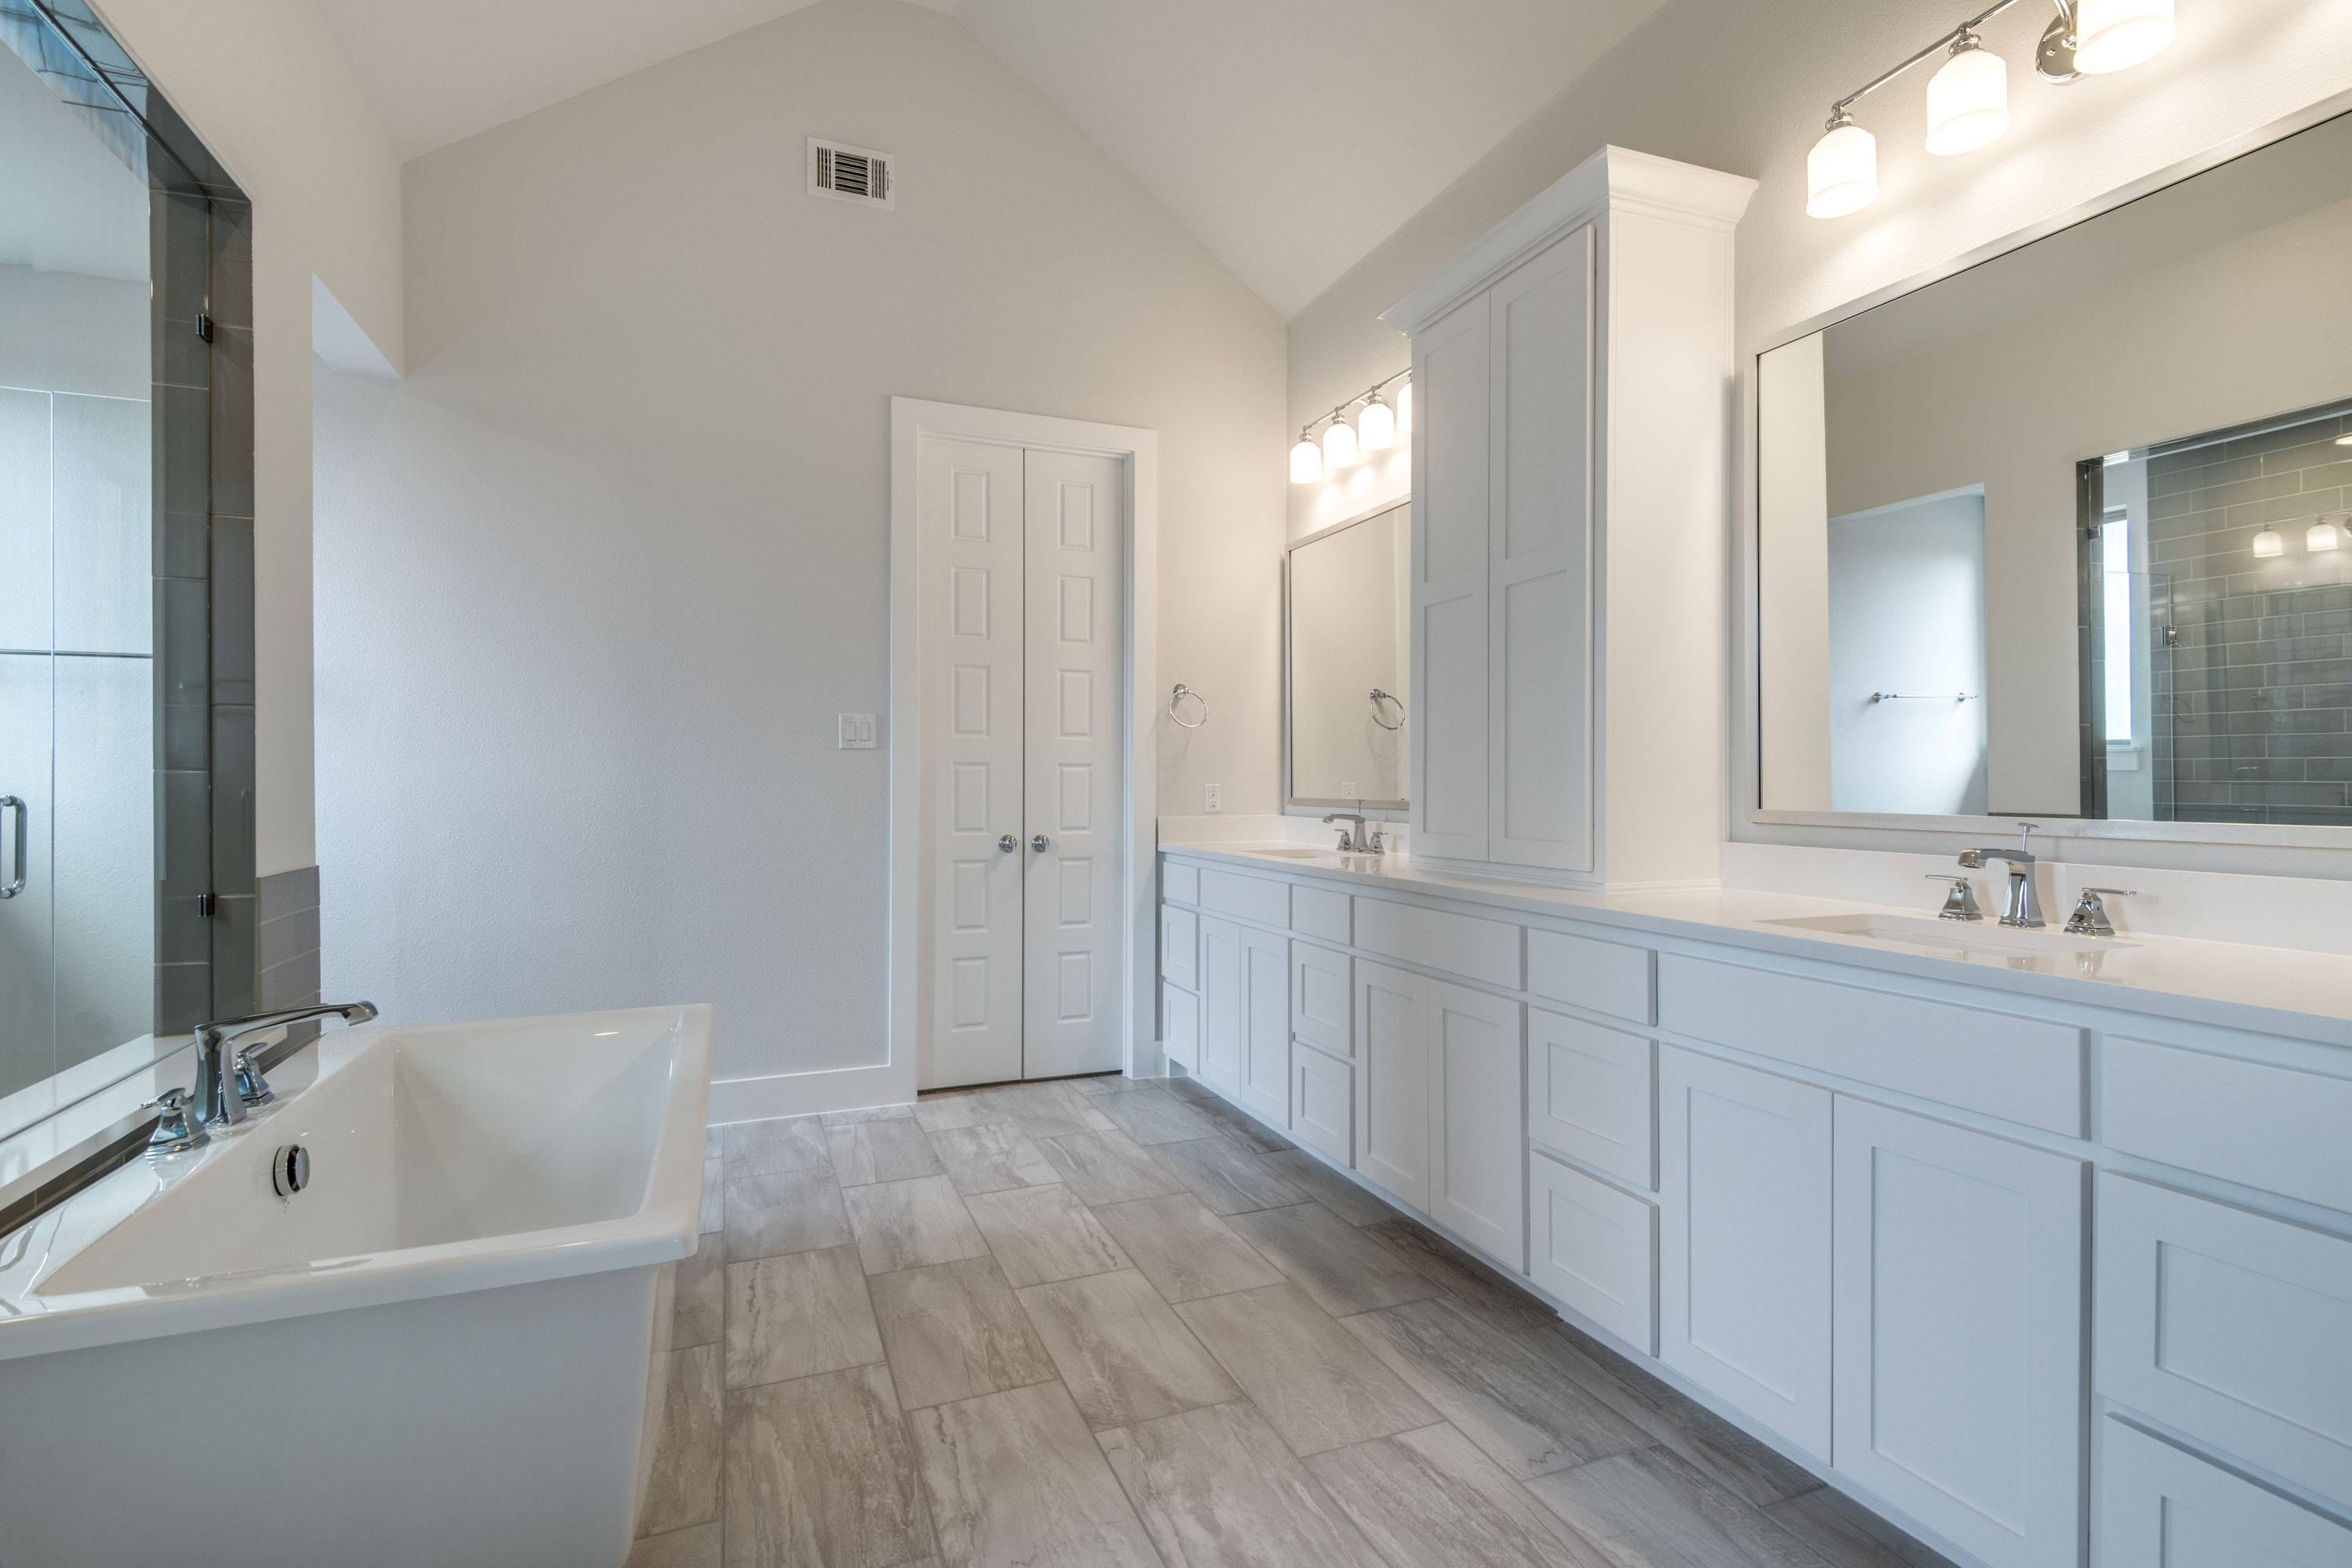 Bathroom featured in The Ashland | 50214.1 By Southgate Homes in Dallas, TX